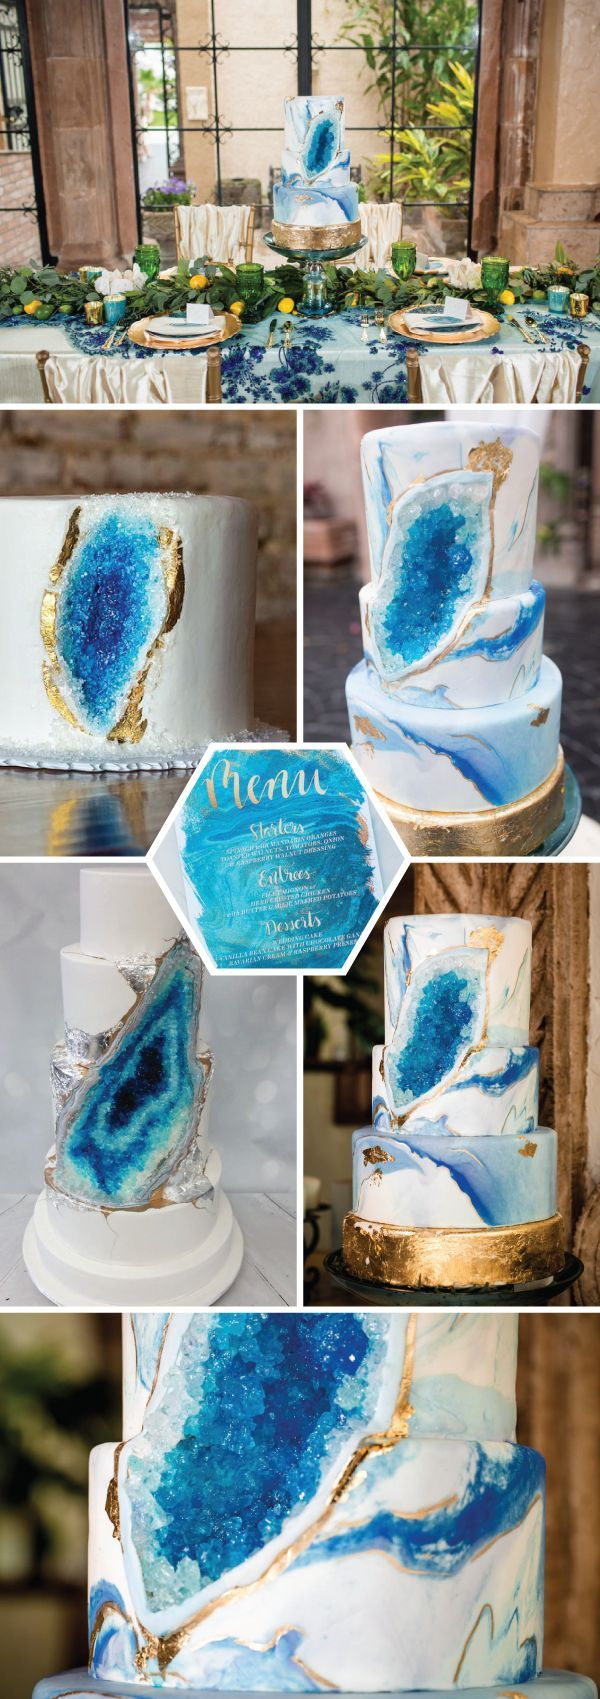 Geode cakes and why they are today's hottest wedding trend